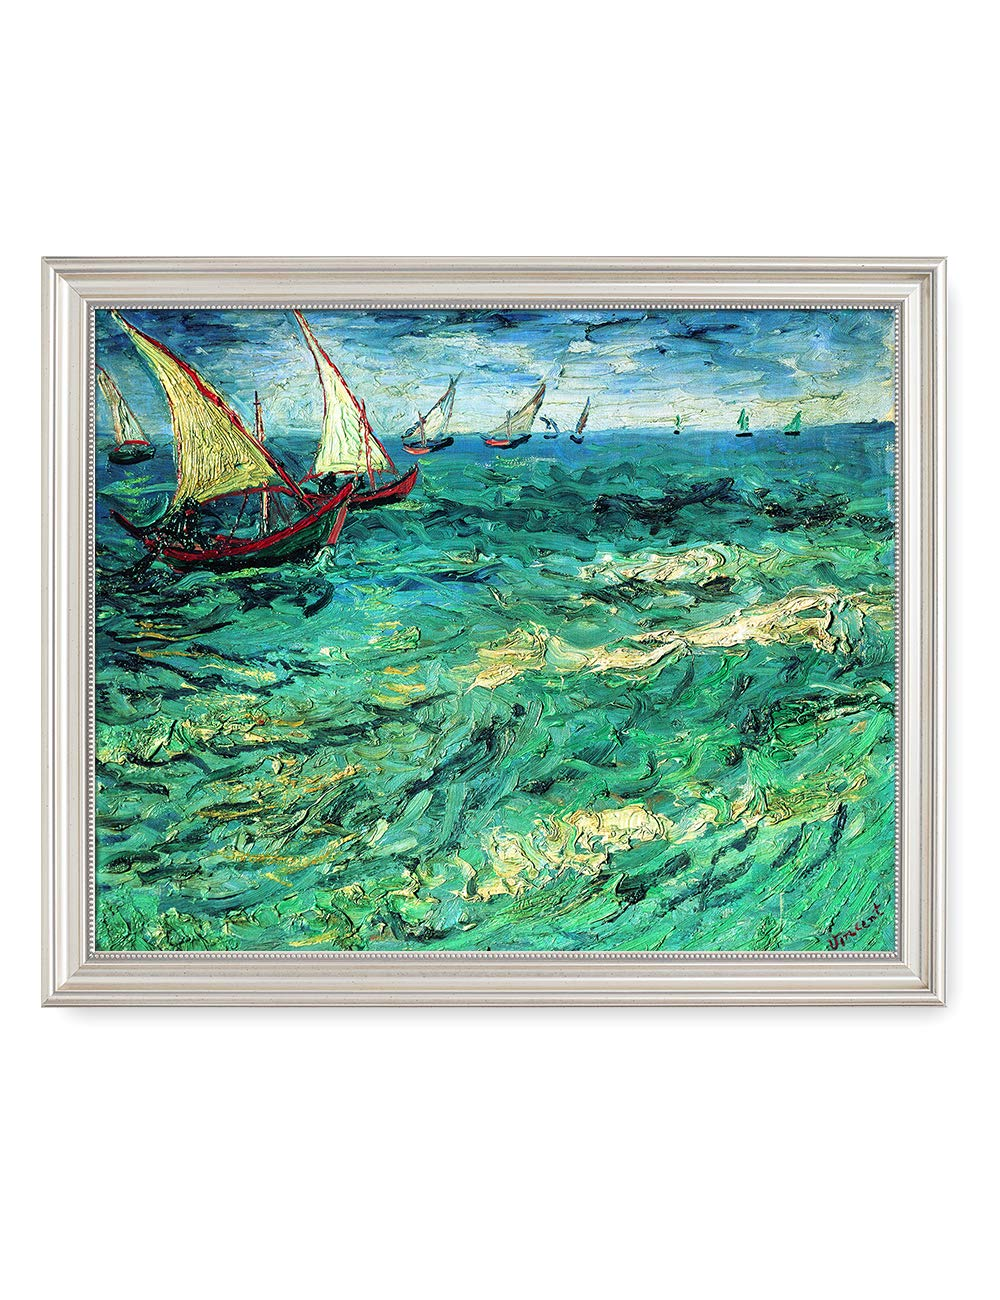 DECORARTS - Fishing Boats at Sea, Vincent Van Gogh Art Reproduction. Giclee Print& Framed Art for Wall Decor. 20x16, Framed Size: 23x19